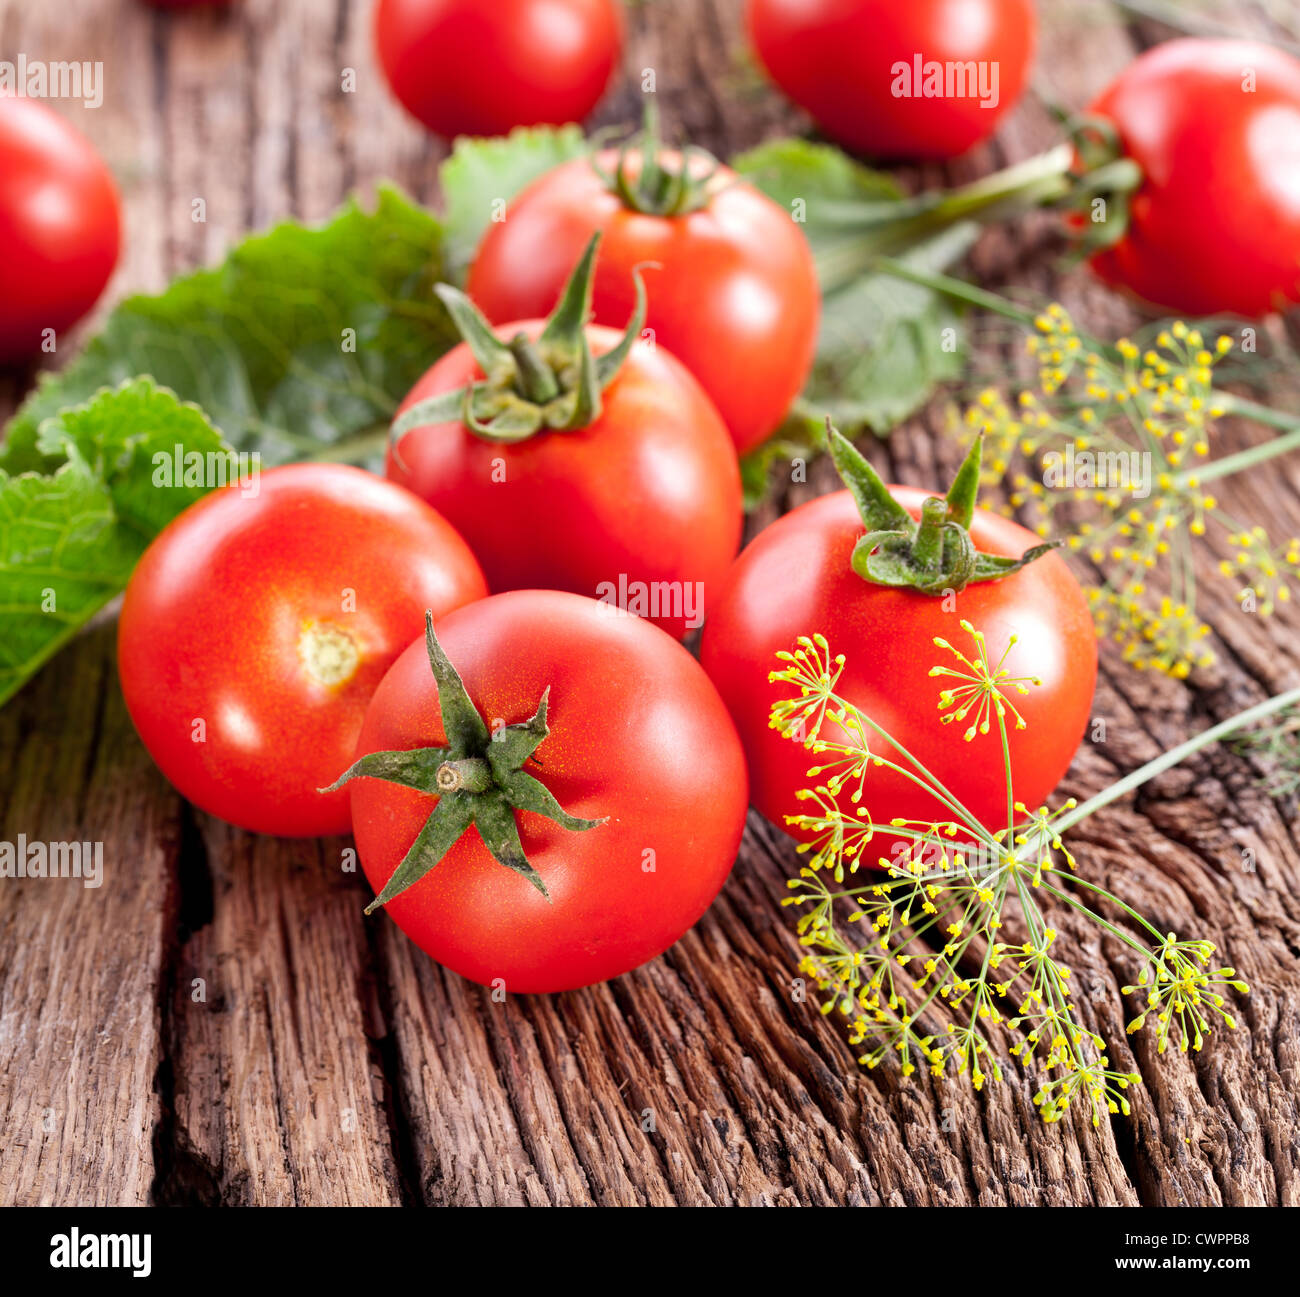 Tomatoes, cooked with herbs for the preservation on the old wooden table. - Stock Image